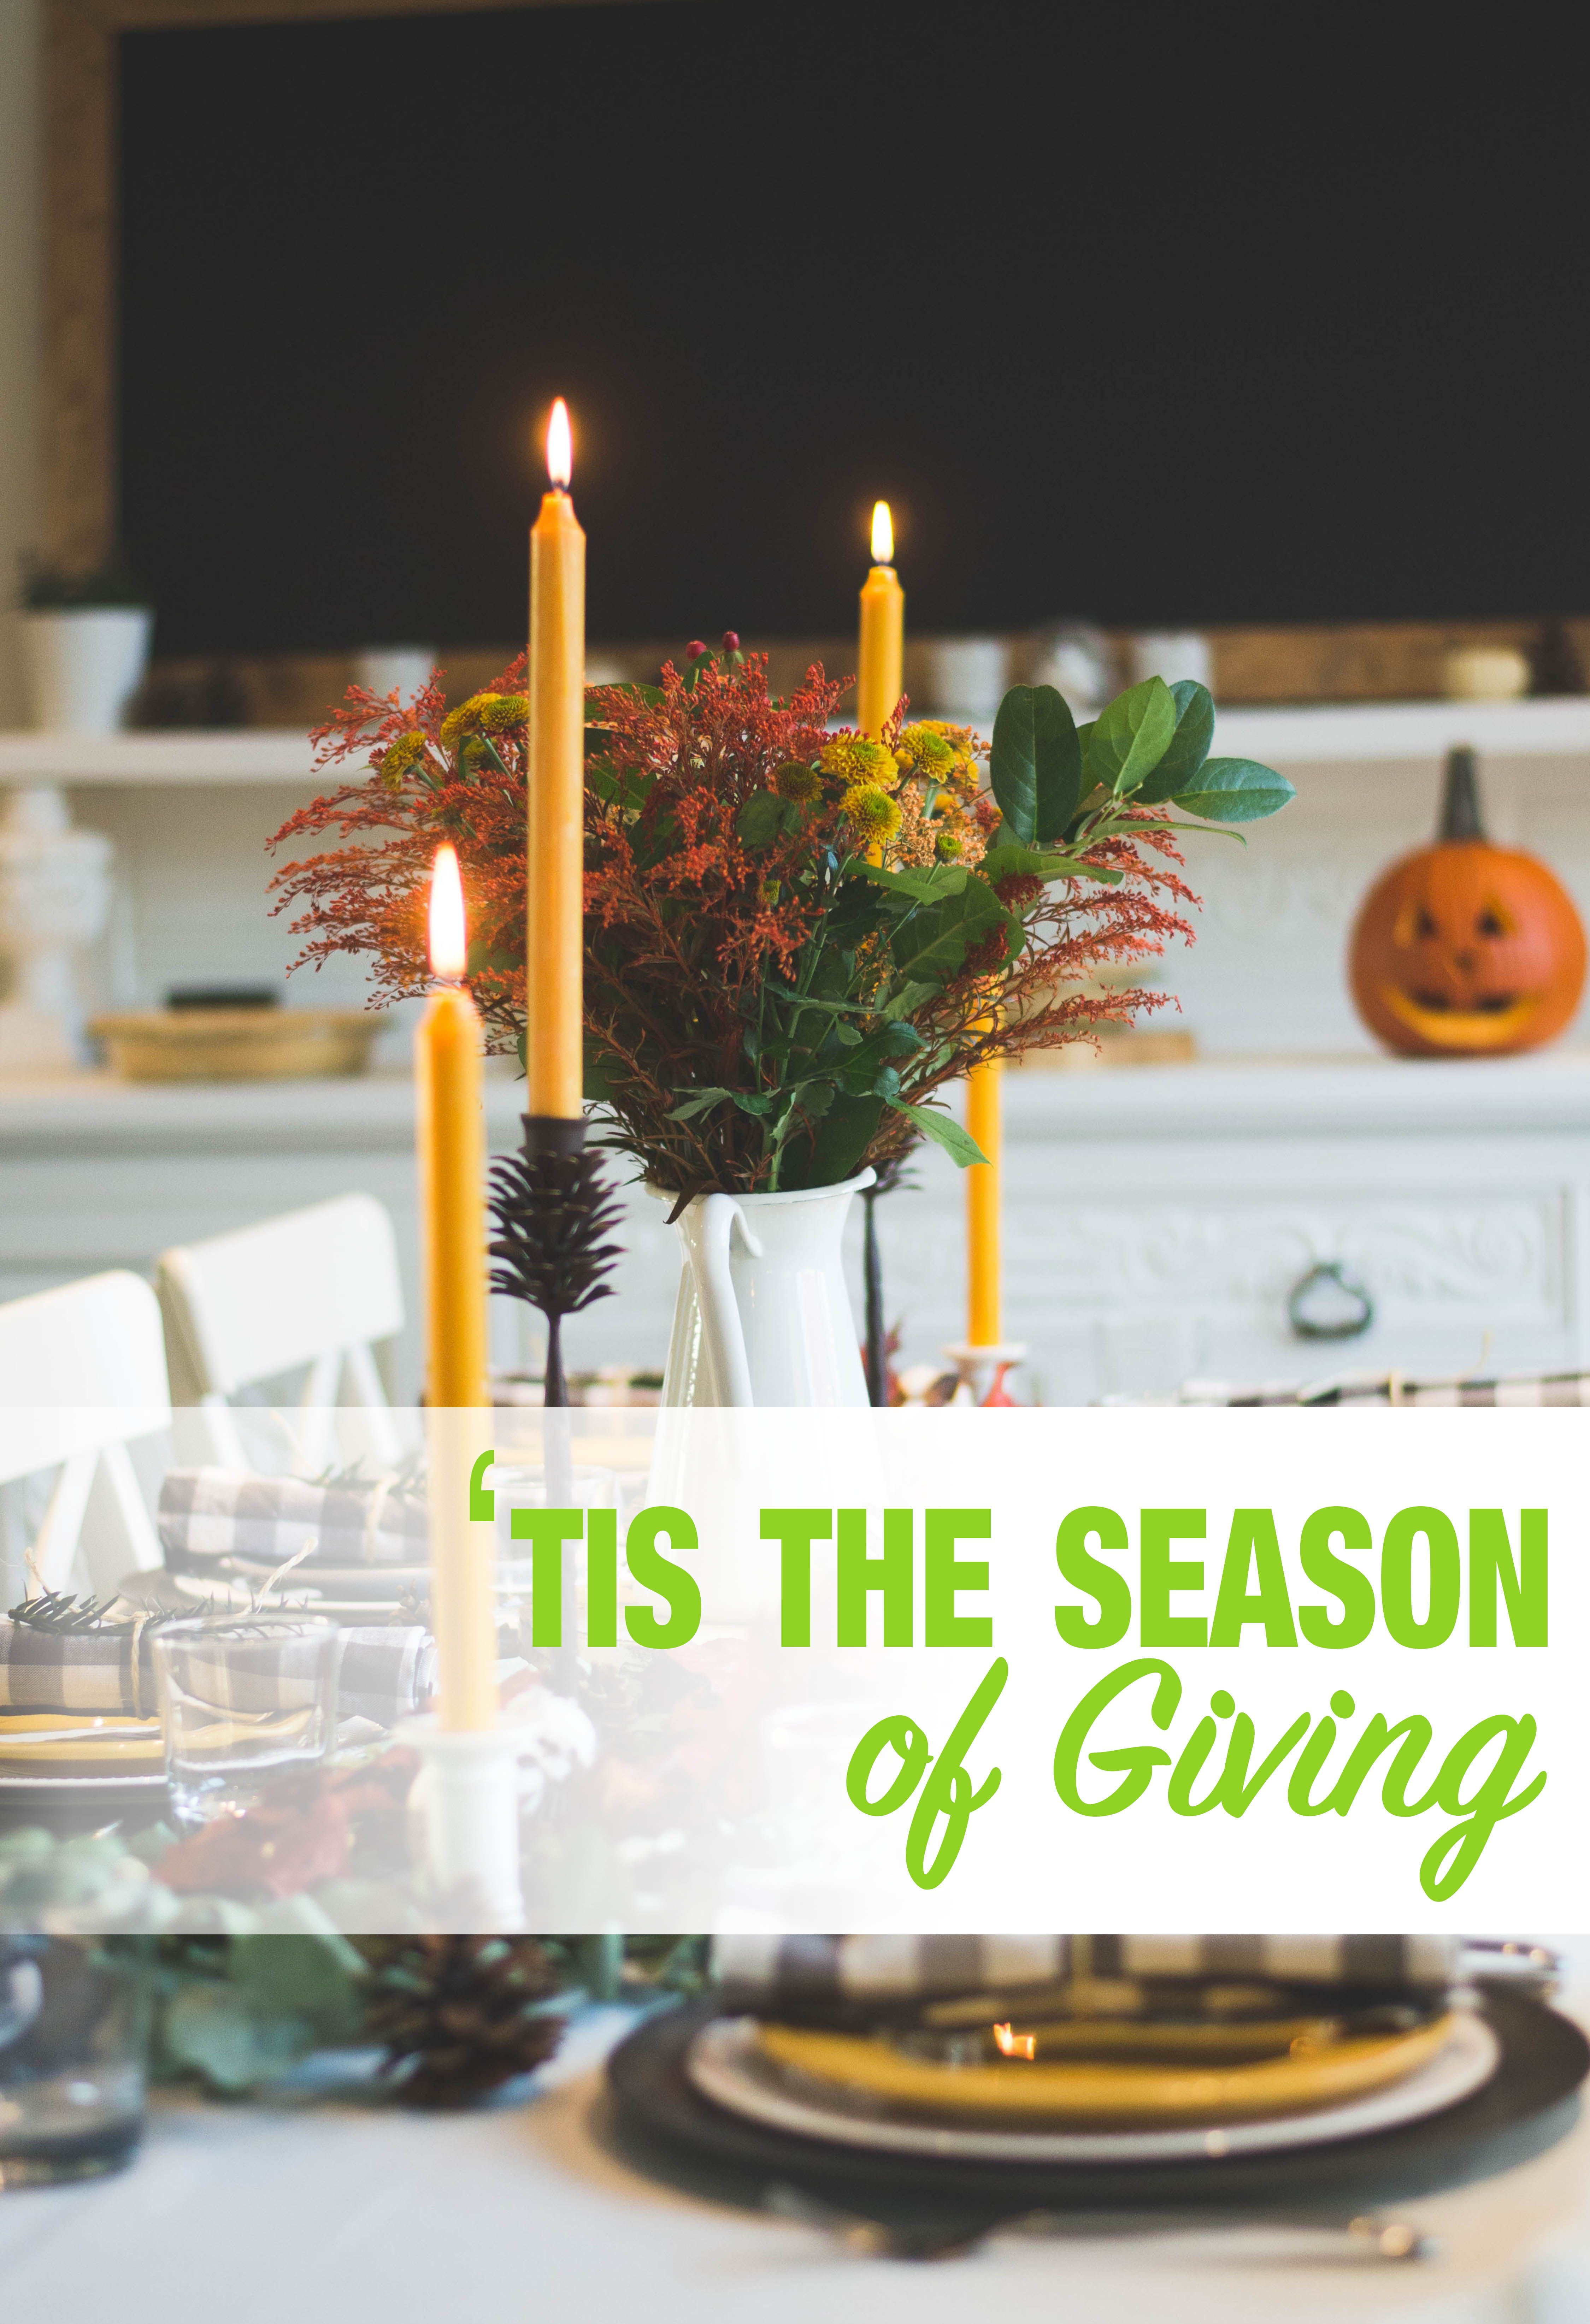 Give back this thanksgiving and help fill the pantries of